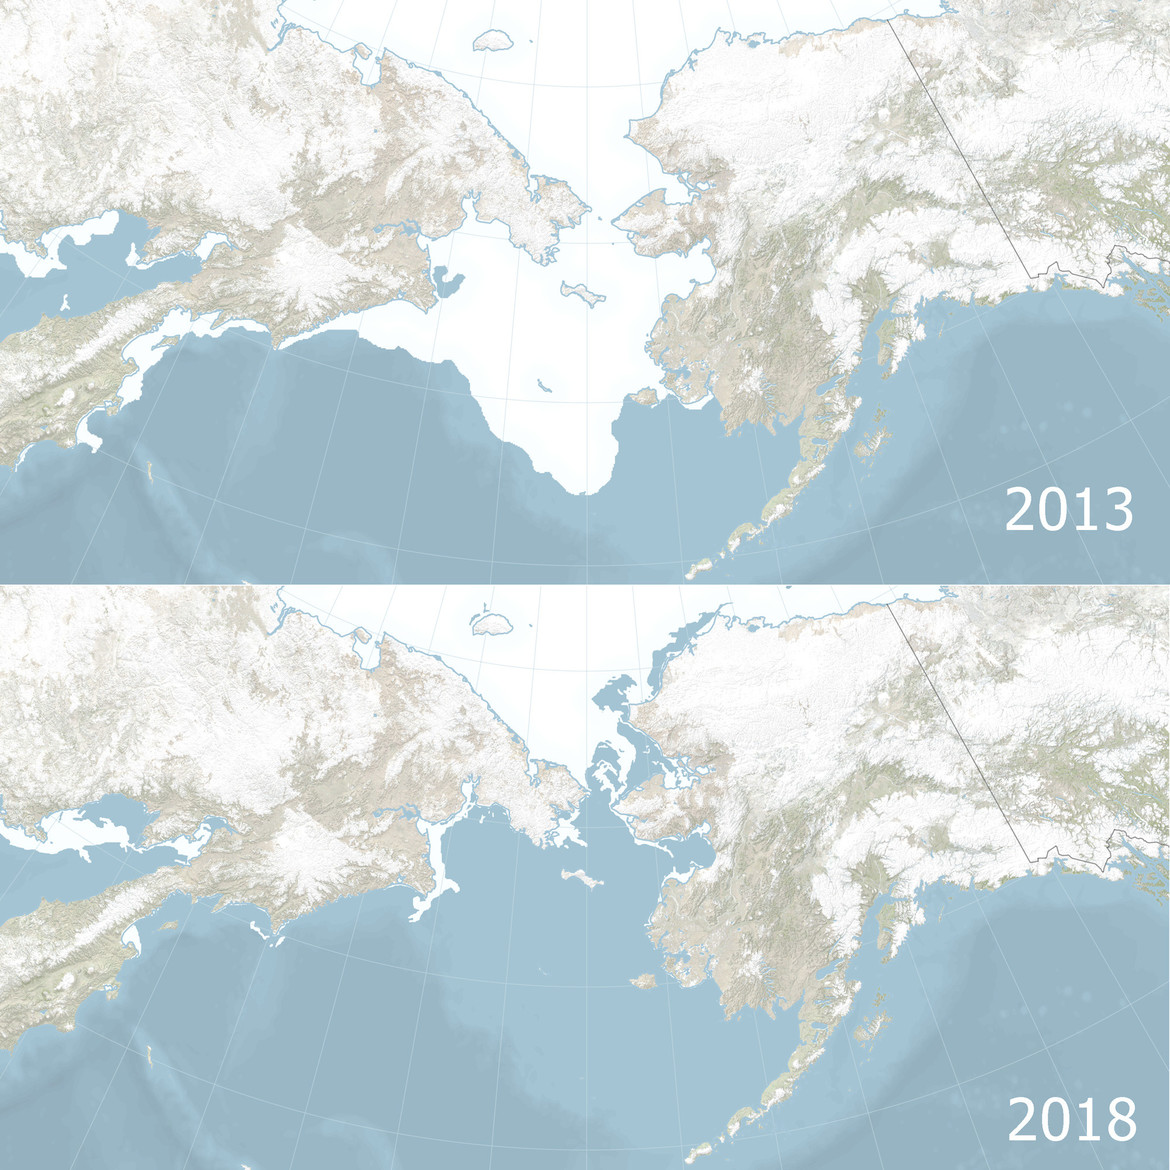 The Bering Sea, between Russia and Alaska, is normally covered with ice in April (top, from 2013), but in 2018 was essentially ice-free (bottom). Credit: NASA Earth Observatory / Joshua Stevens / National Snow and Ice Data Center.